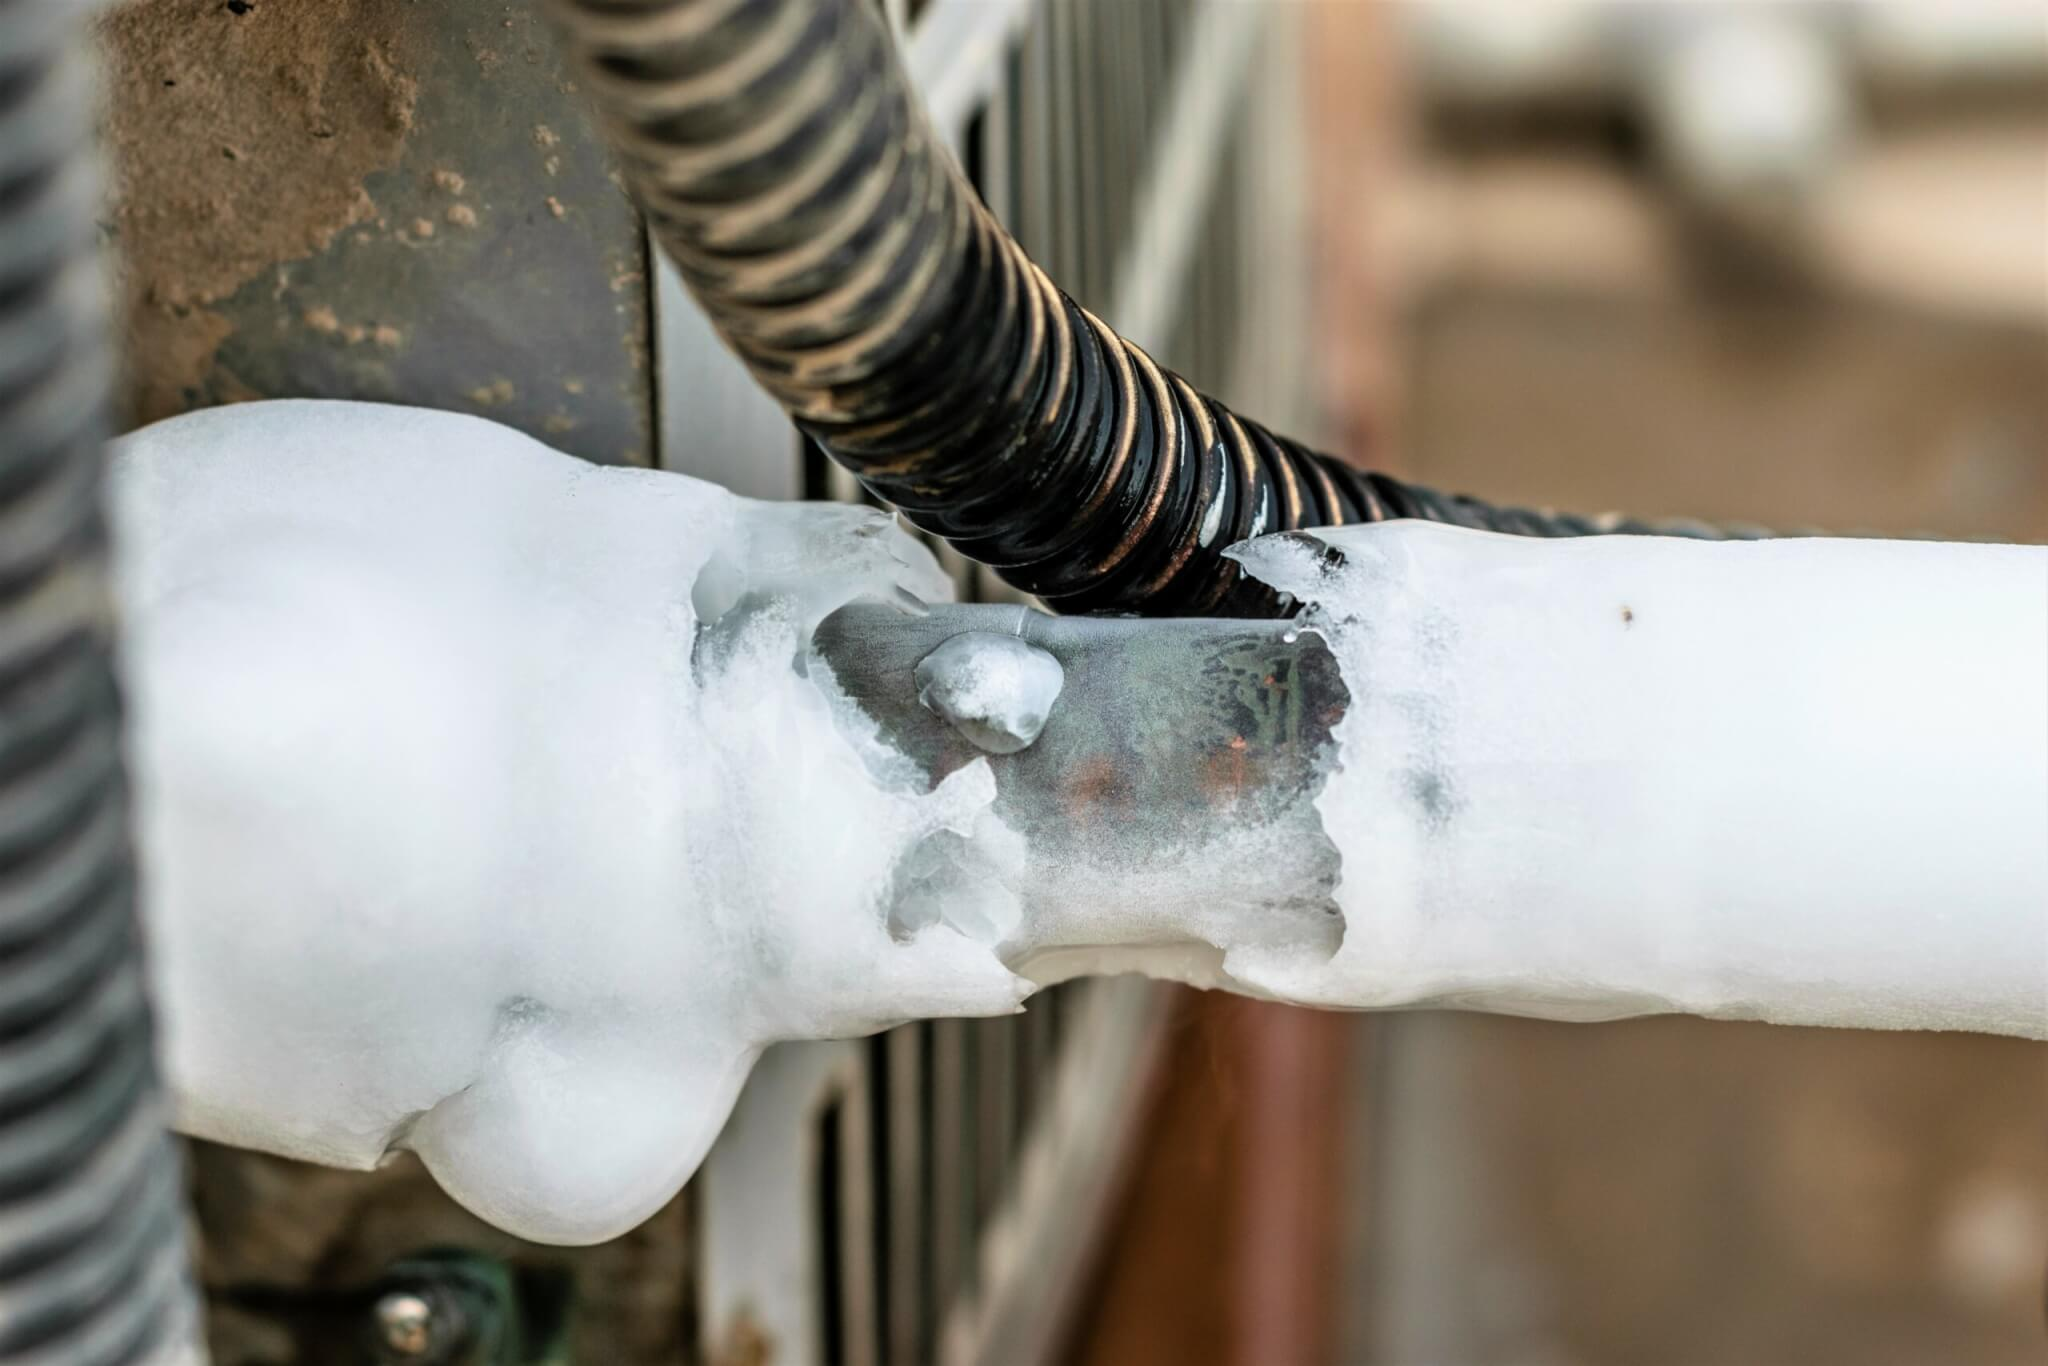 ac cooling air pipes covered by snow or frozen because of super performance of heavy duty central air conditioning system on the roof top in hot summer days